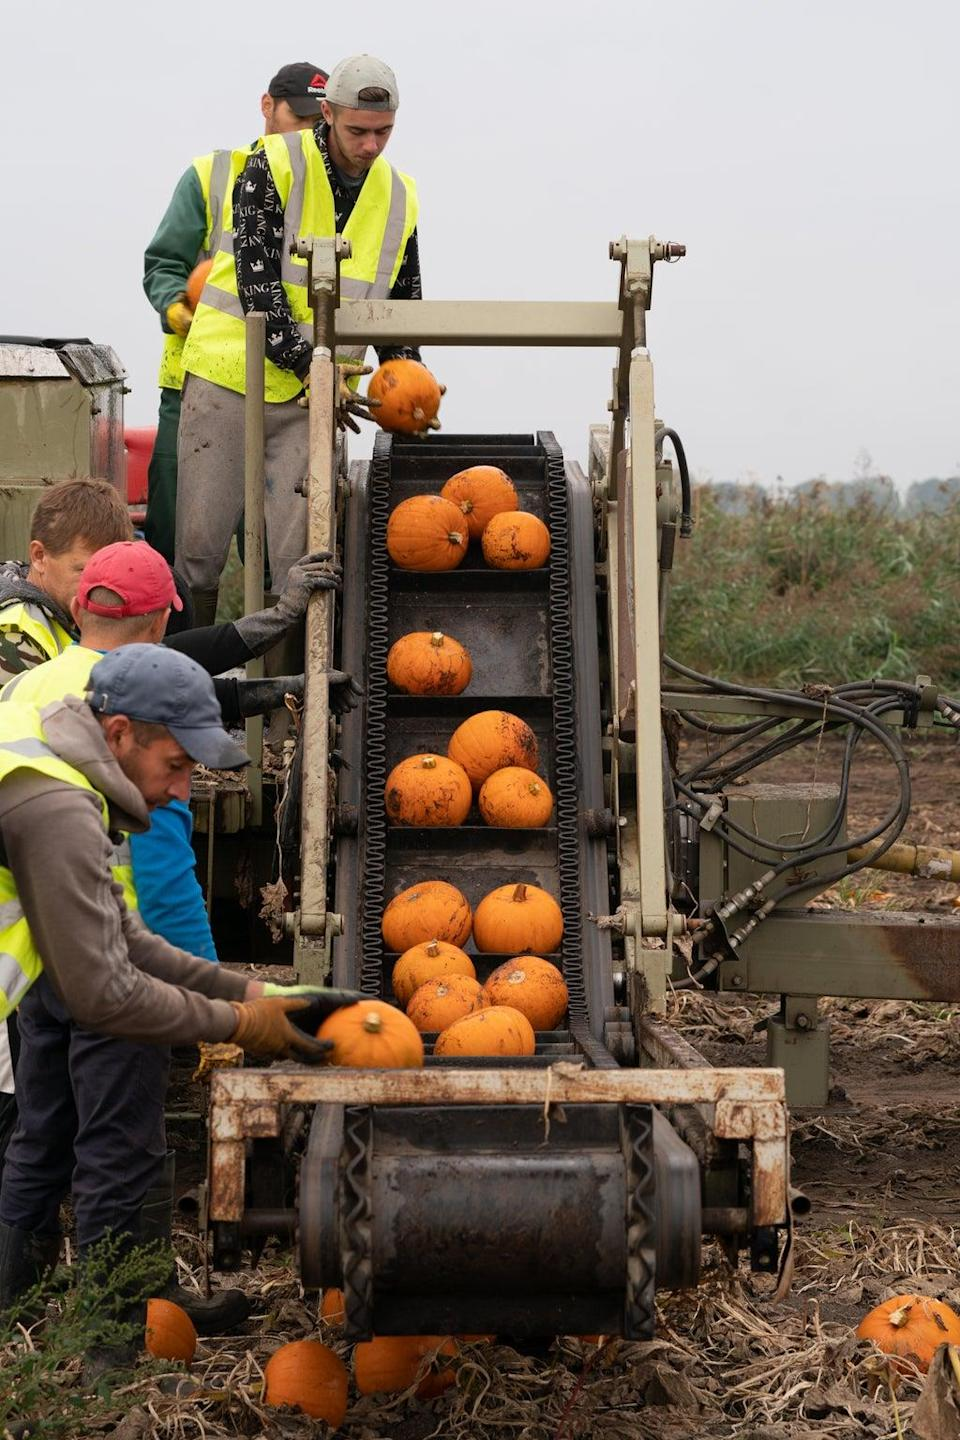 Workers harvest pumpkins at Oakley Farms near Wisbech in Cambridgeshire, which supplies British supermarkets including Tesco (Joe Giddens/PA) (PA Wire)